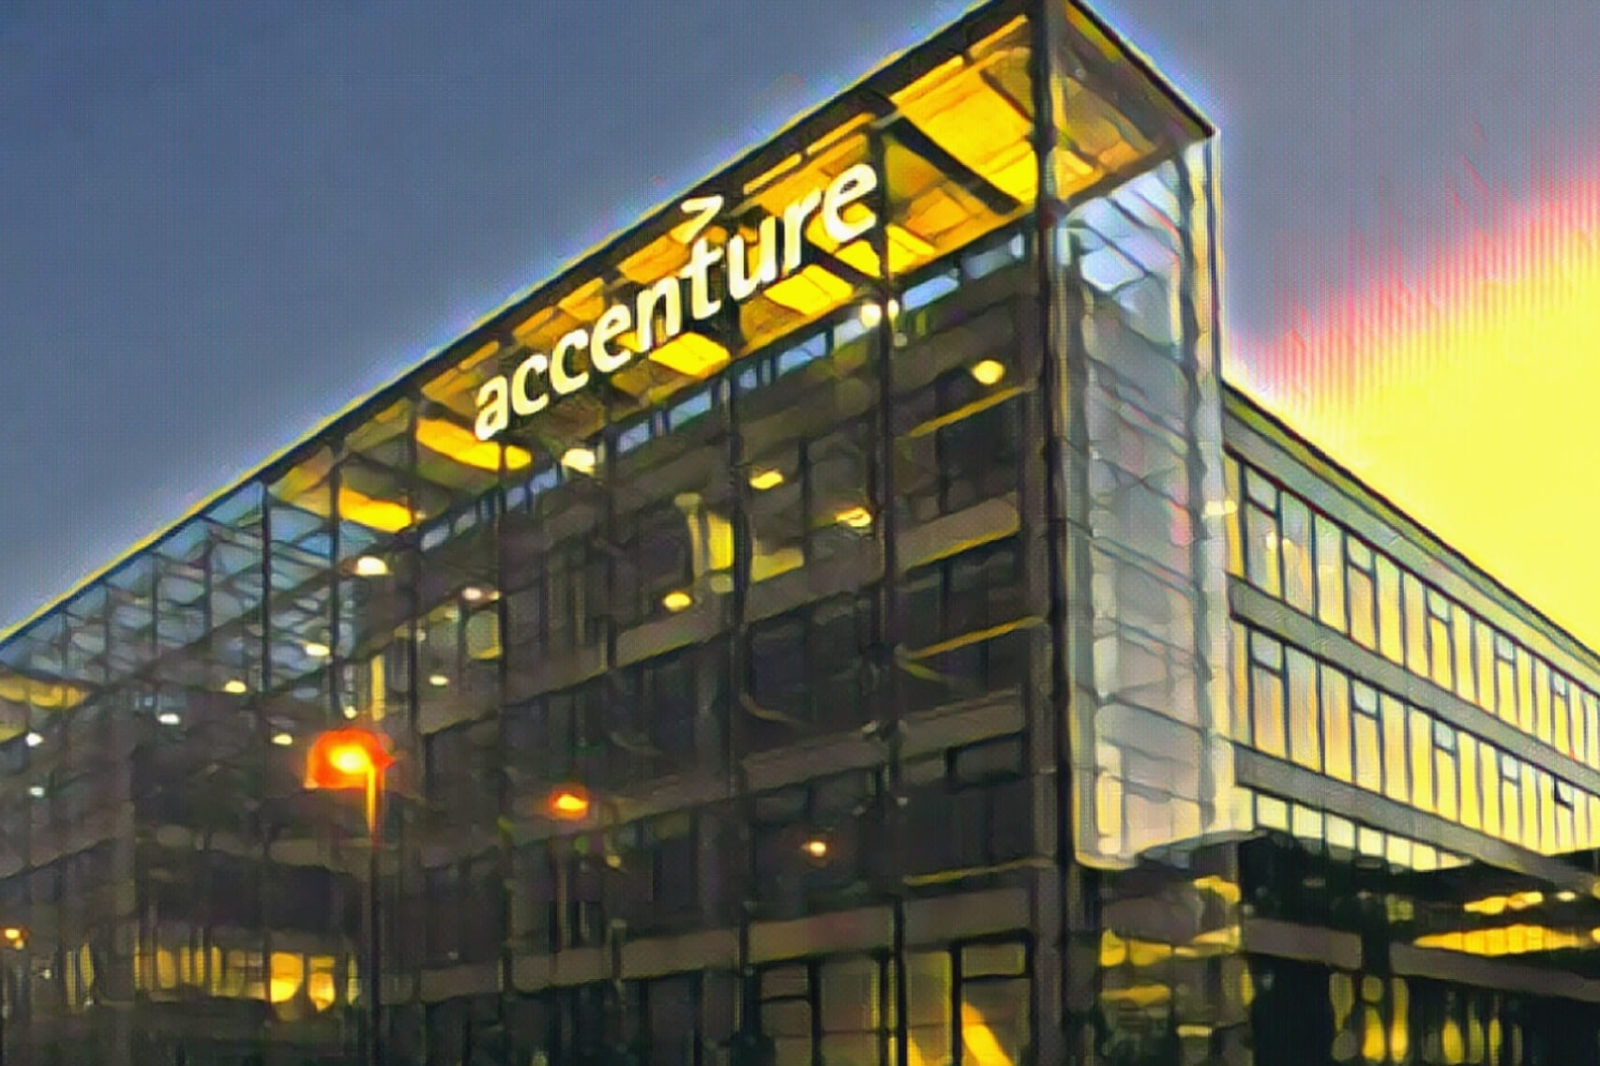 Accenture mission statement and vision statement analysis